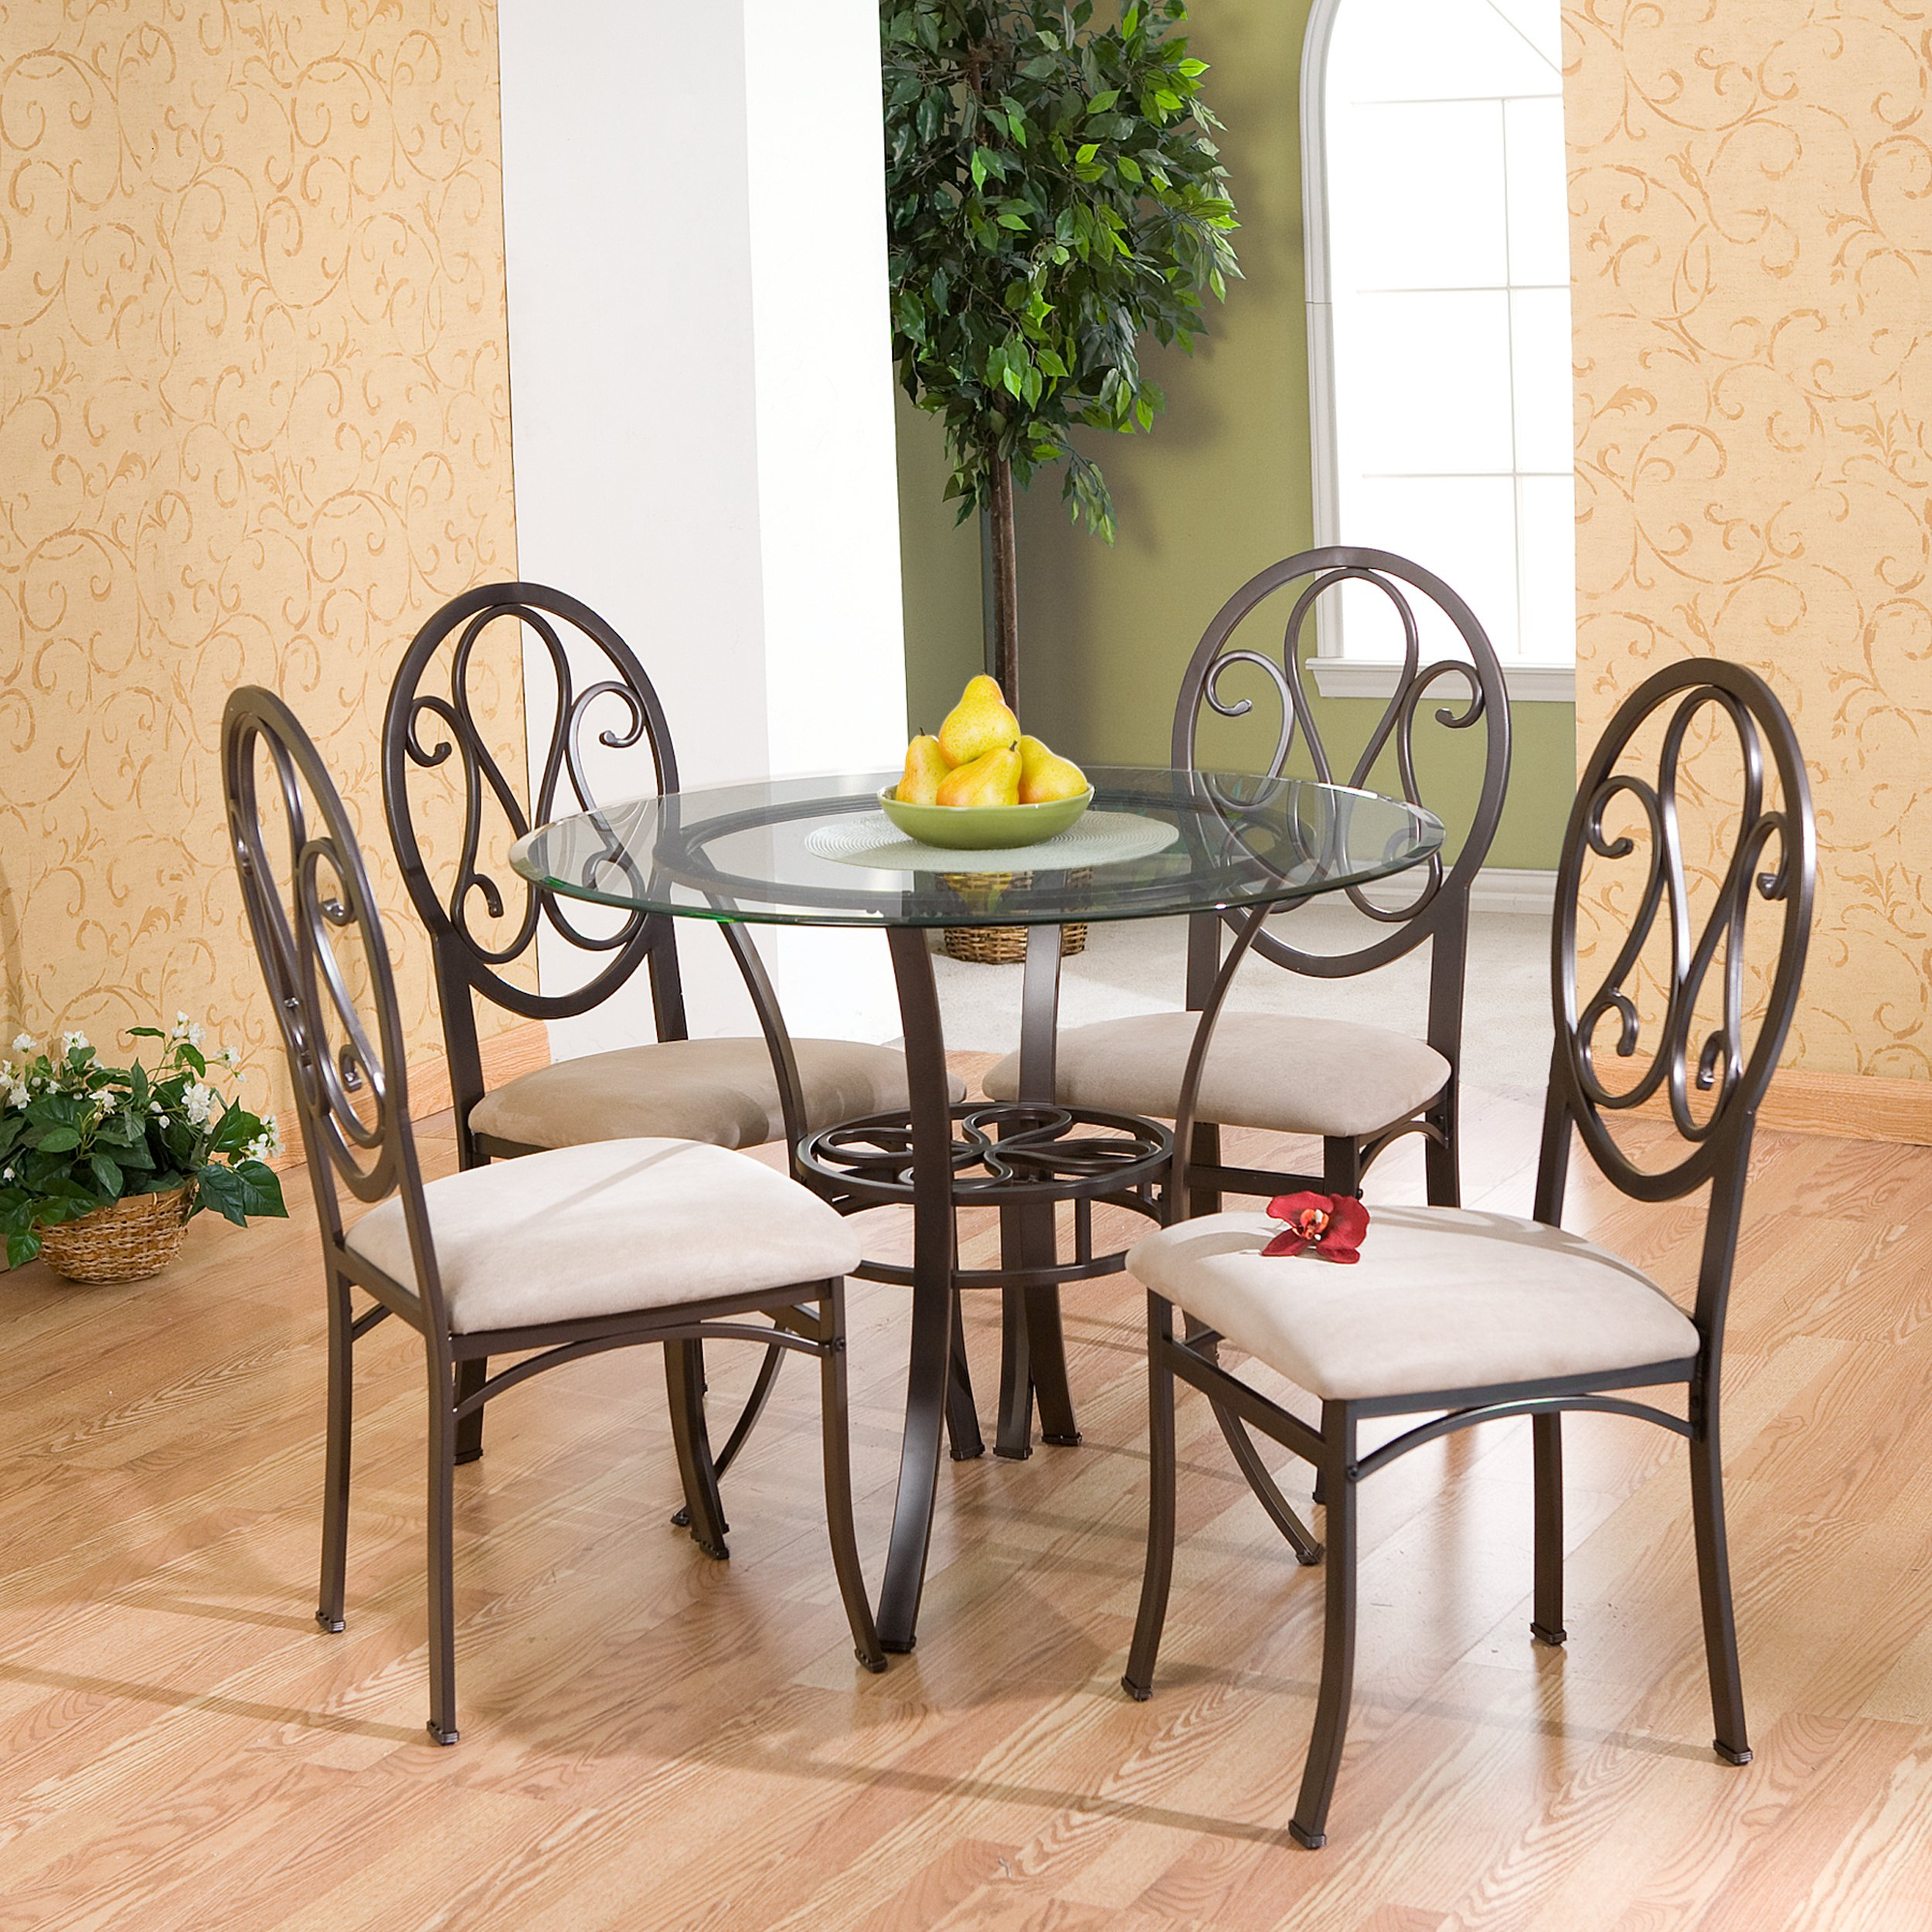 Southern Enterprises Lucianna Glass Top Dining Table, Dark Brown Finish by Southern Enterprises (Image #6)